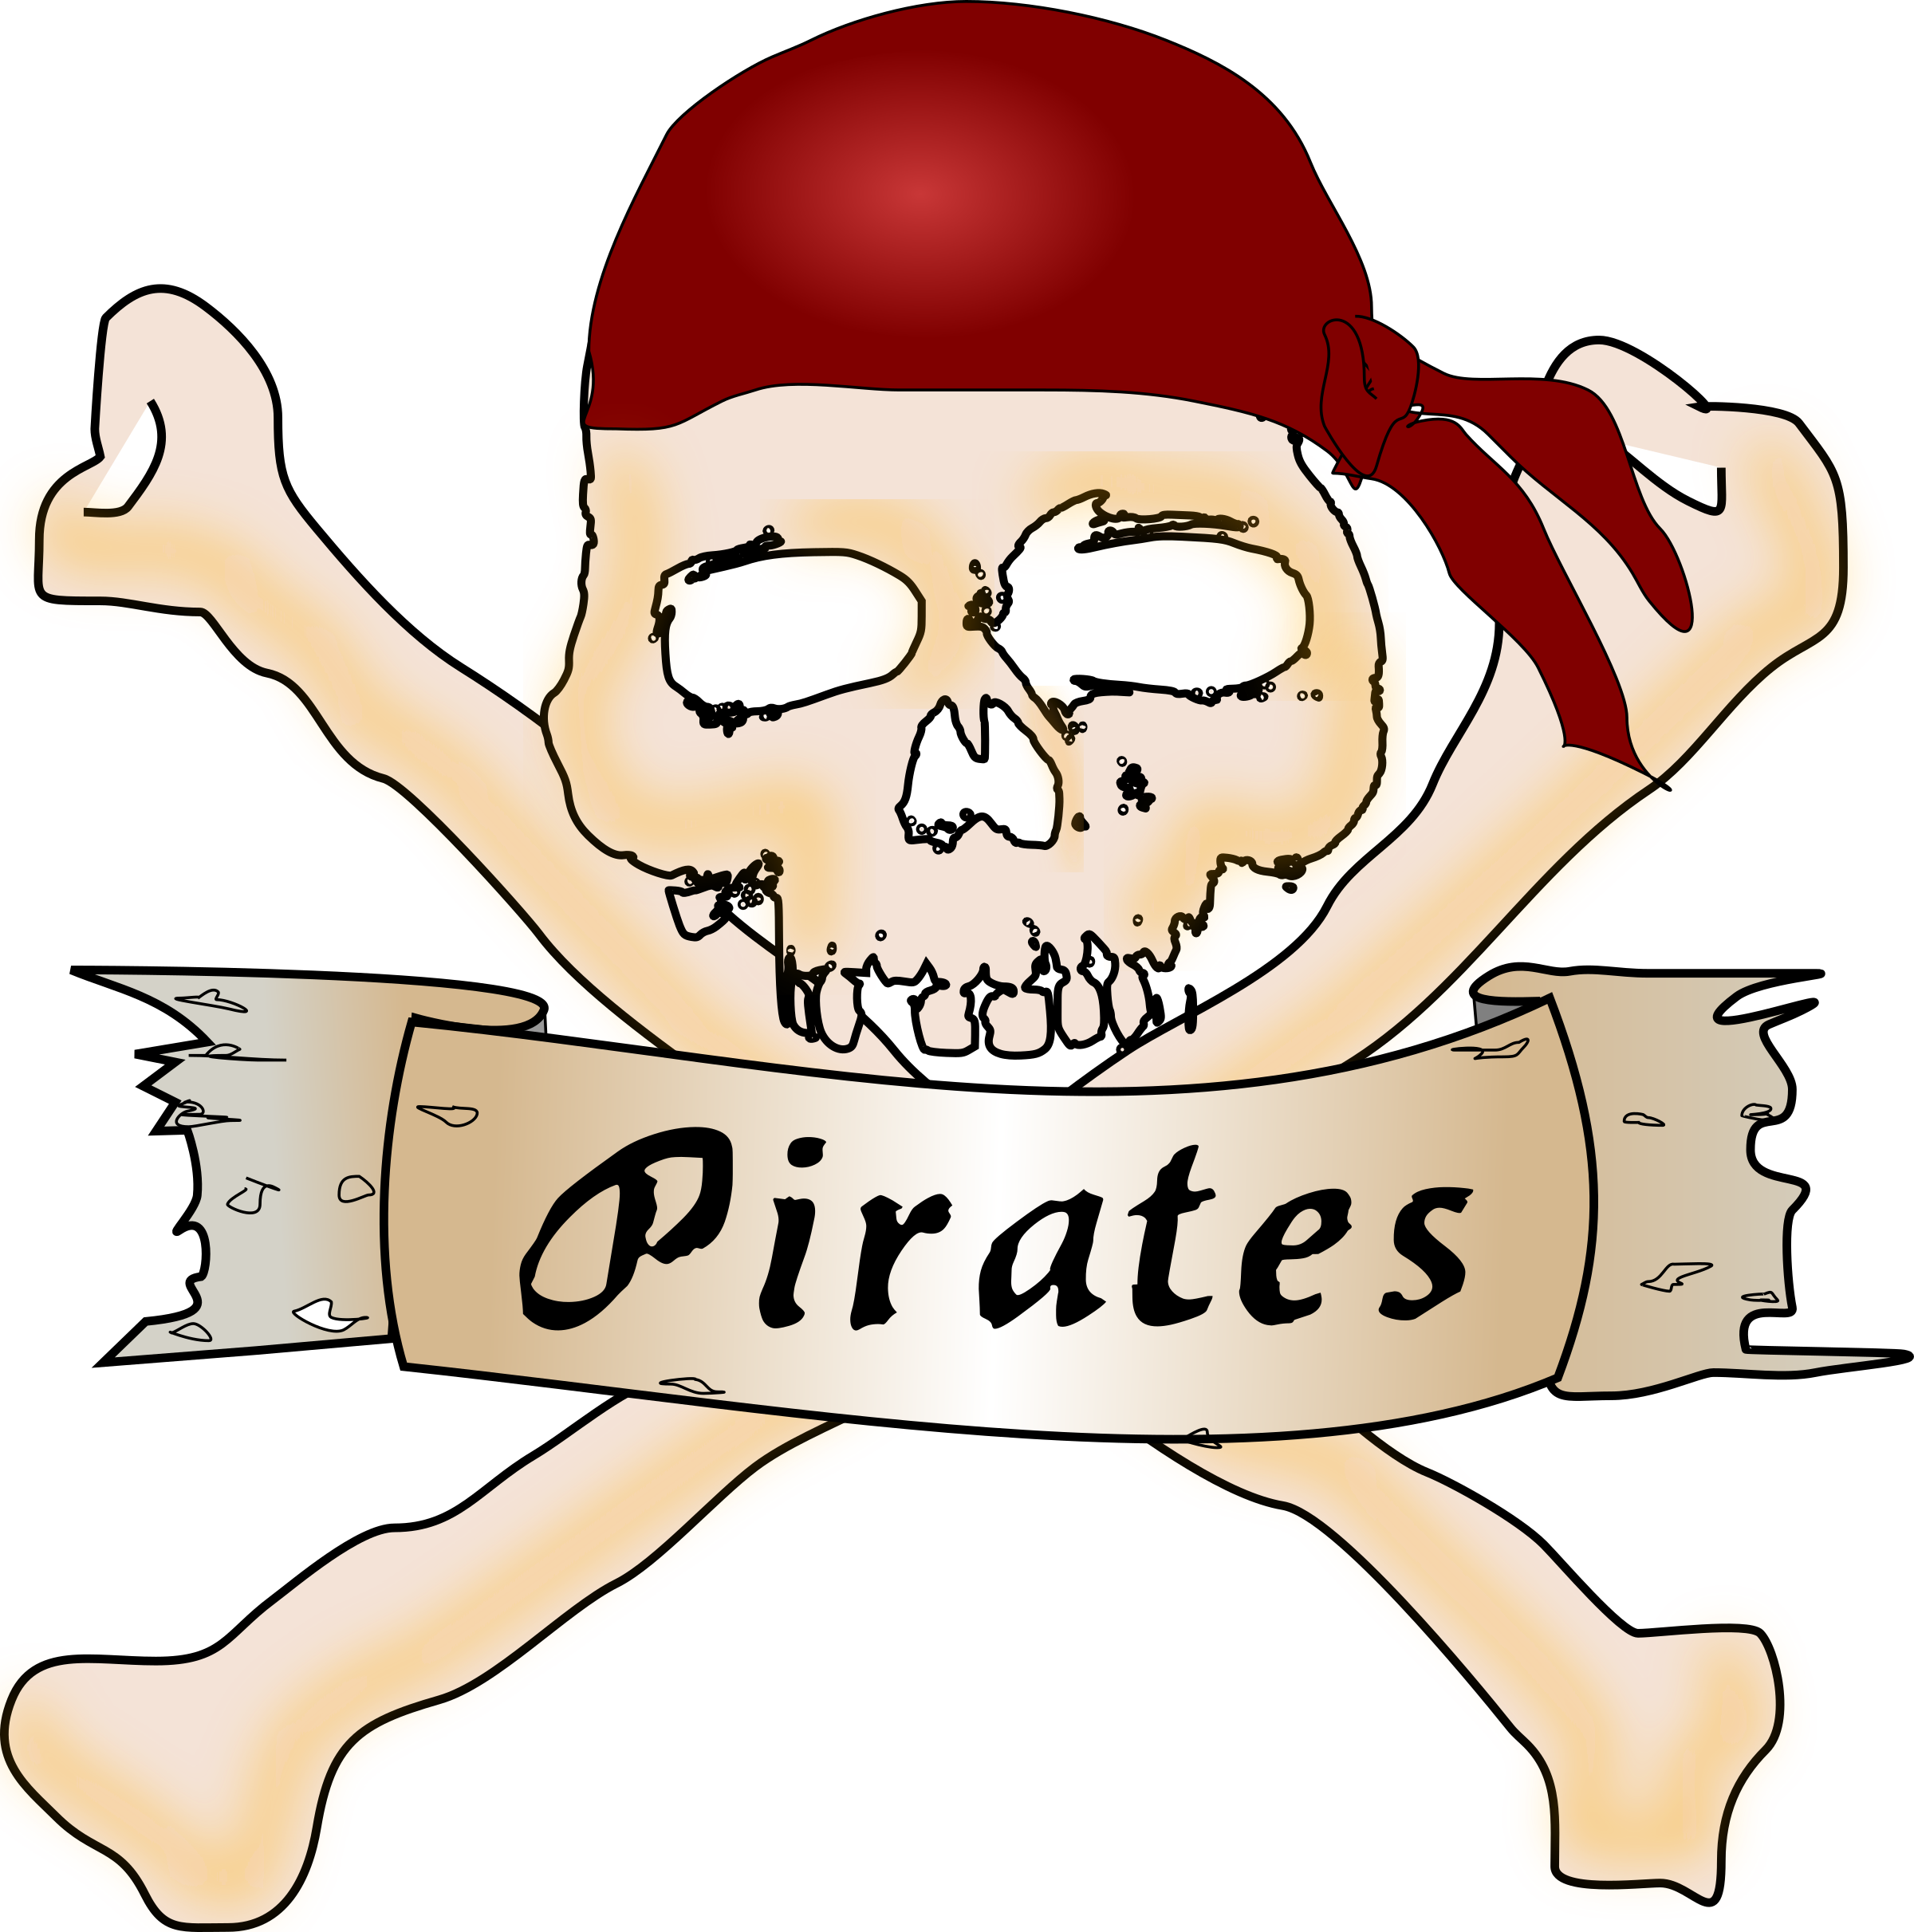 Scared baseball clipart graphic free library Pirates Clipart - Free Clipart on Dumielauxepices.net graphic free library